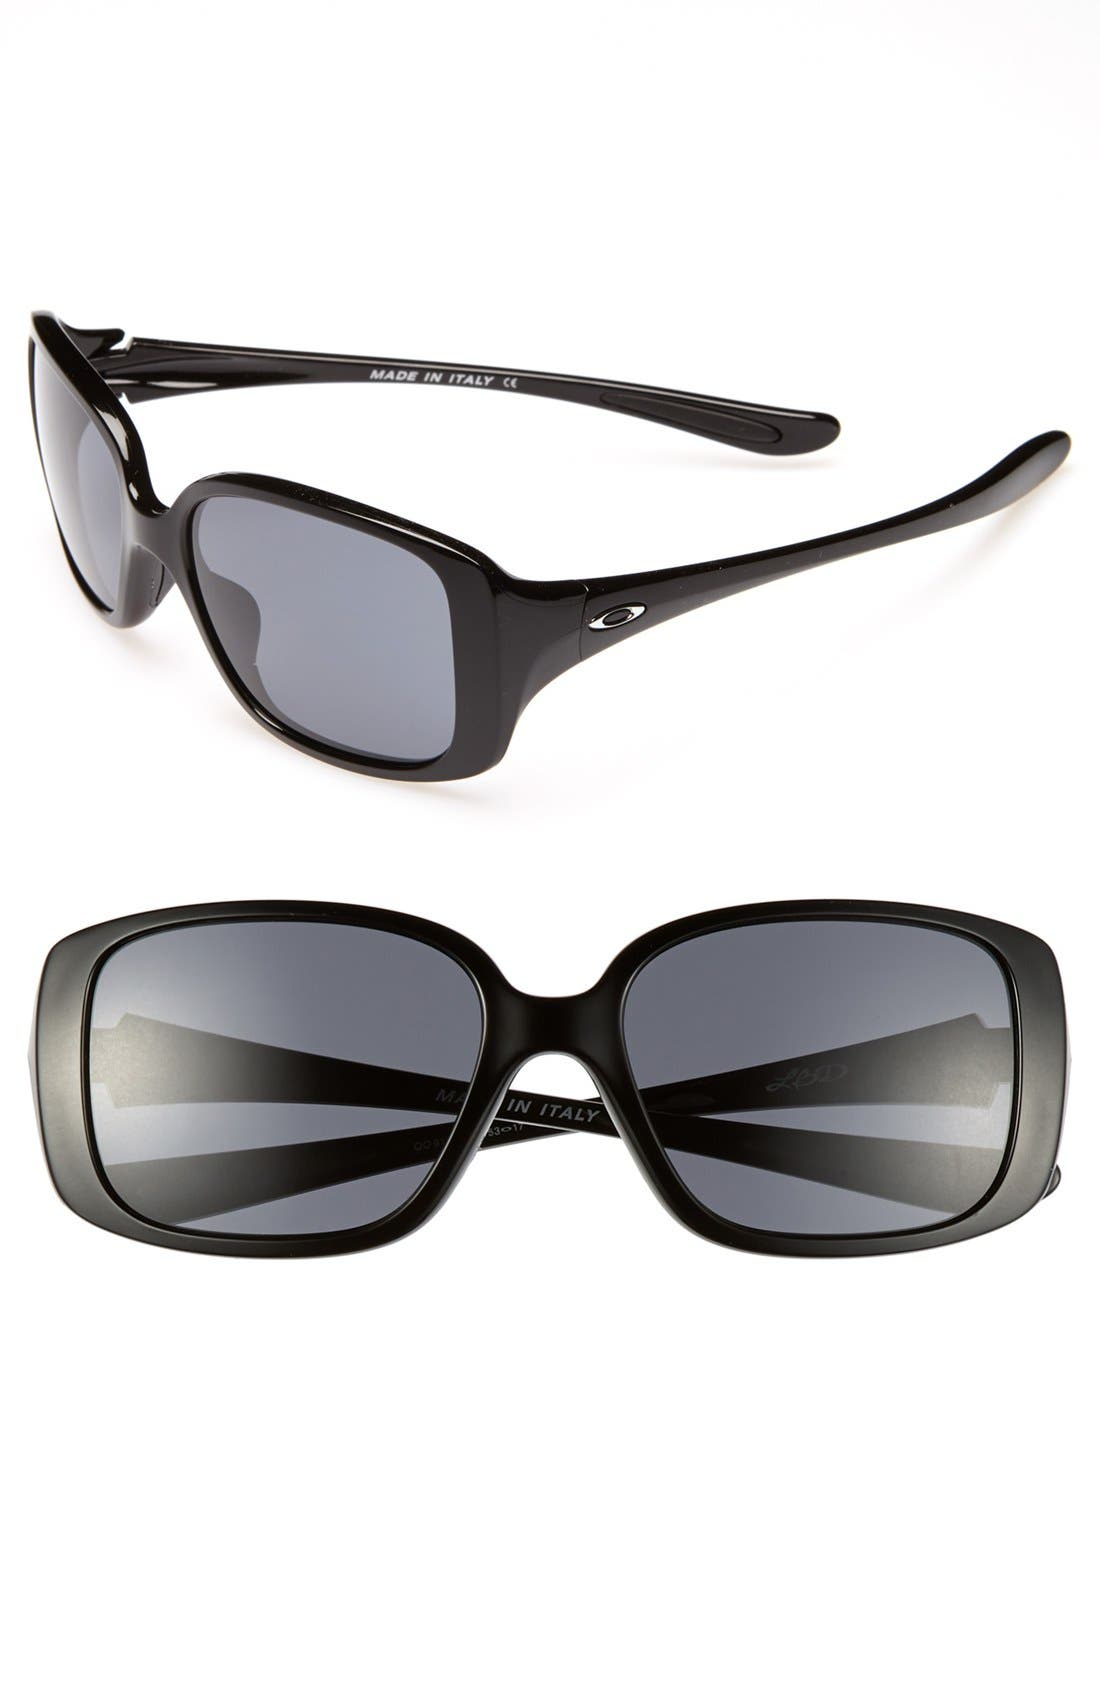 Main Image - Oakley 'LBD' 53mm Sunglasses